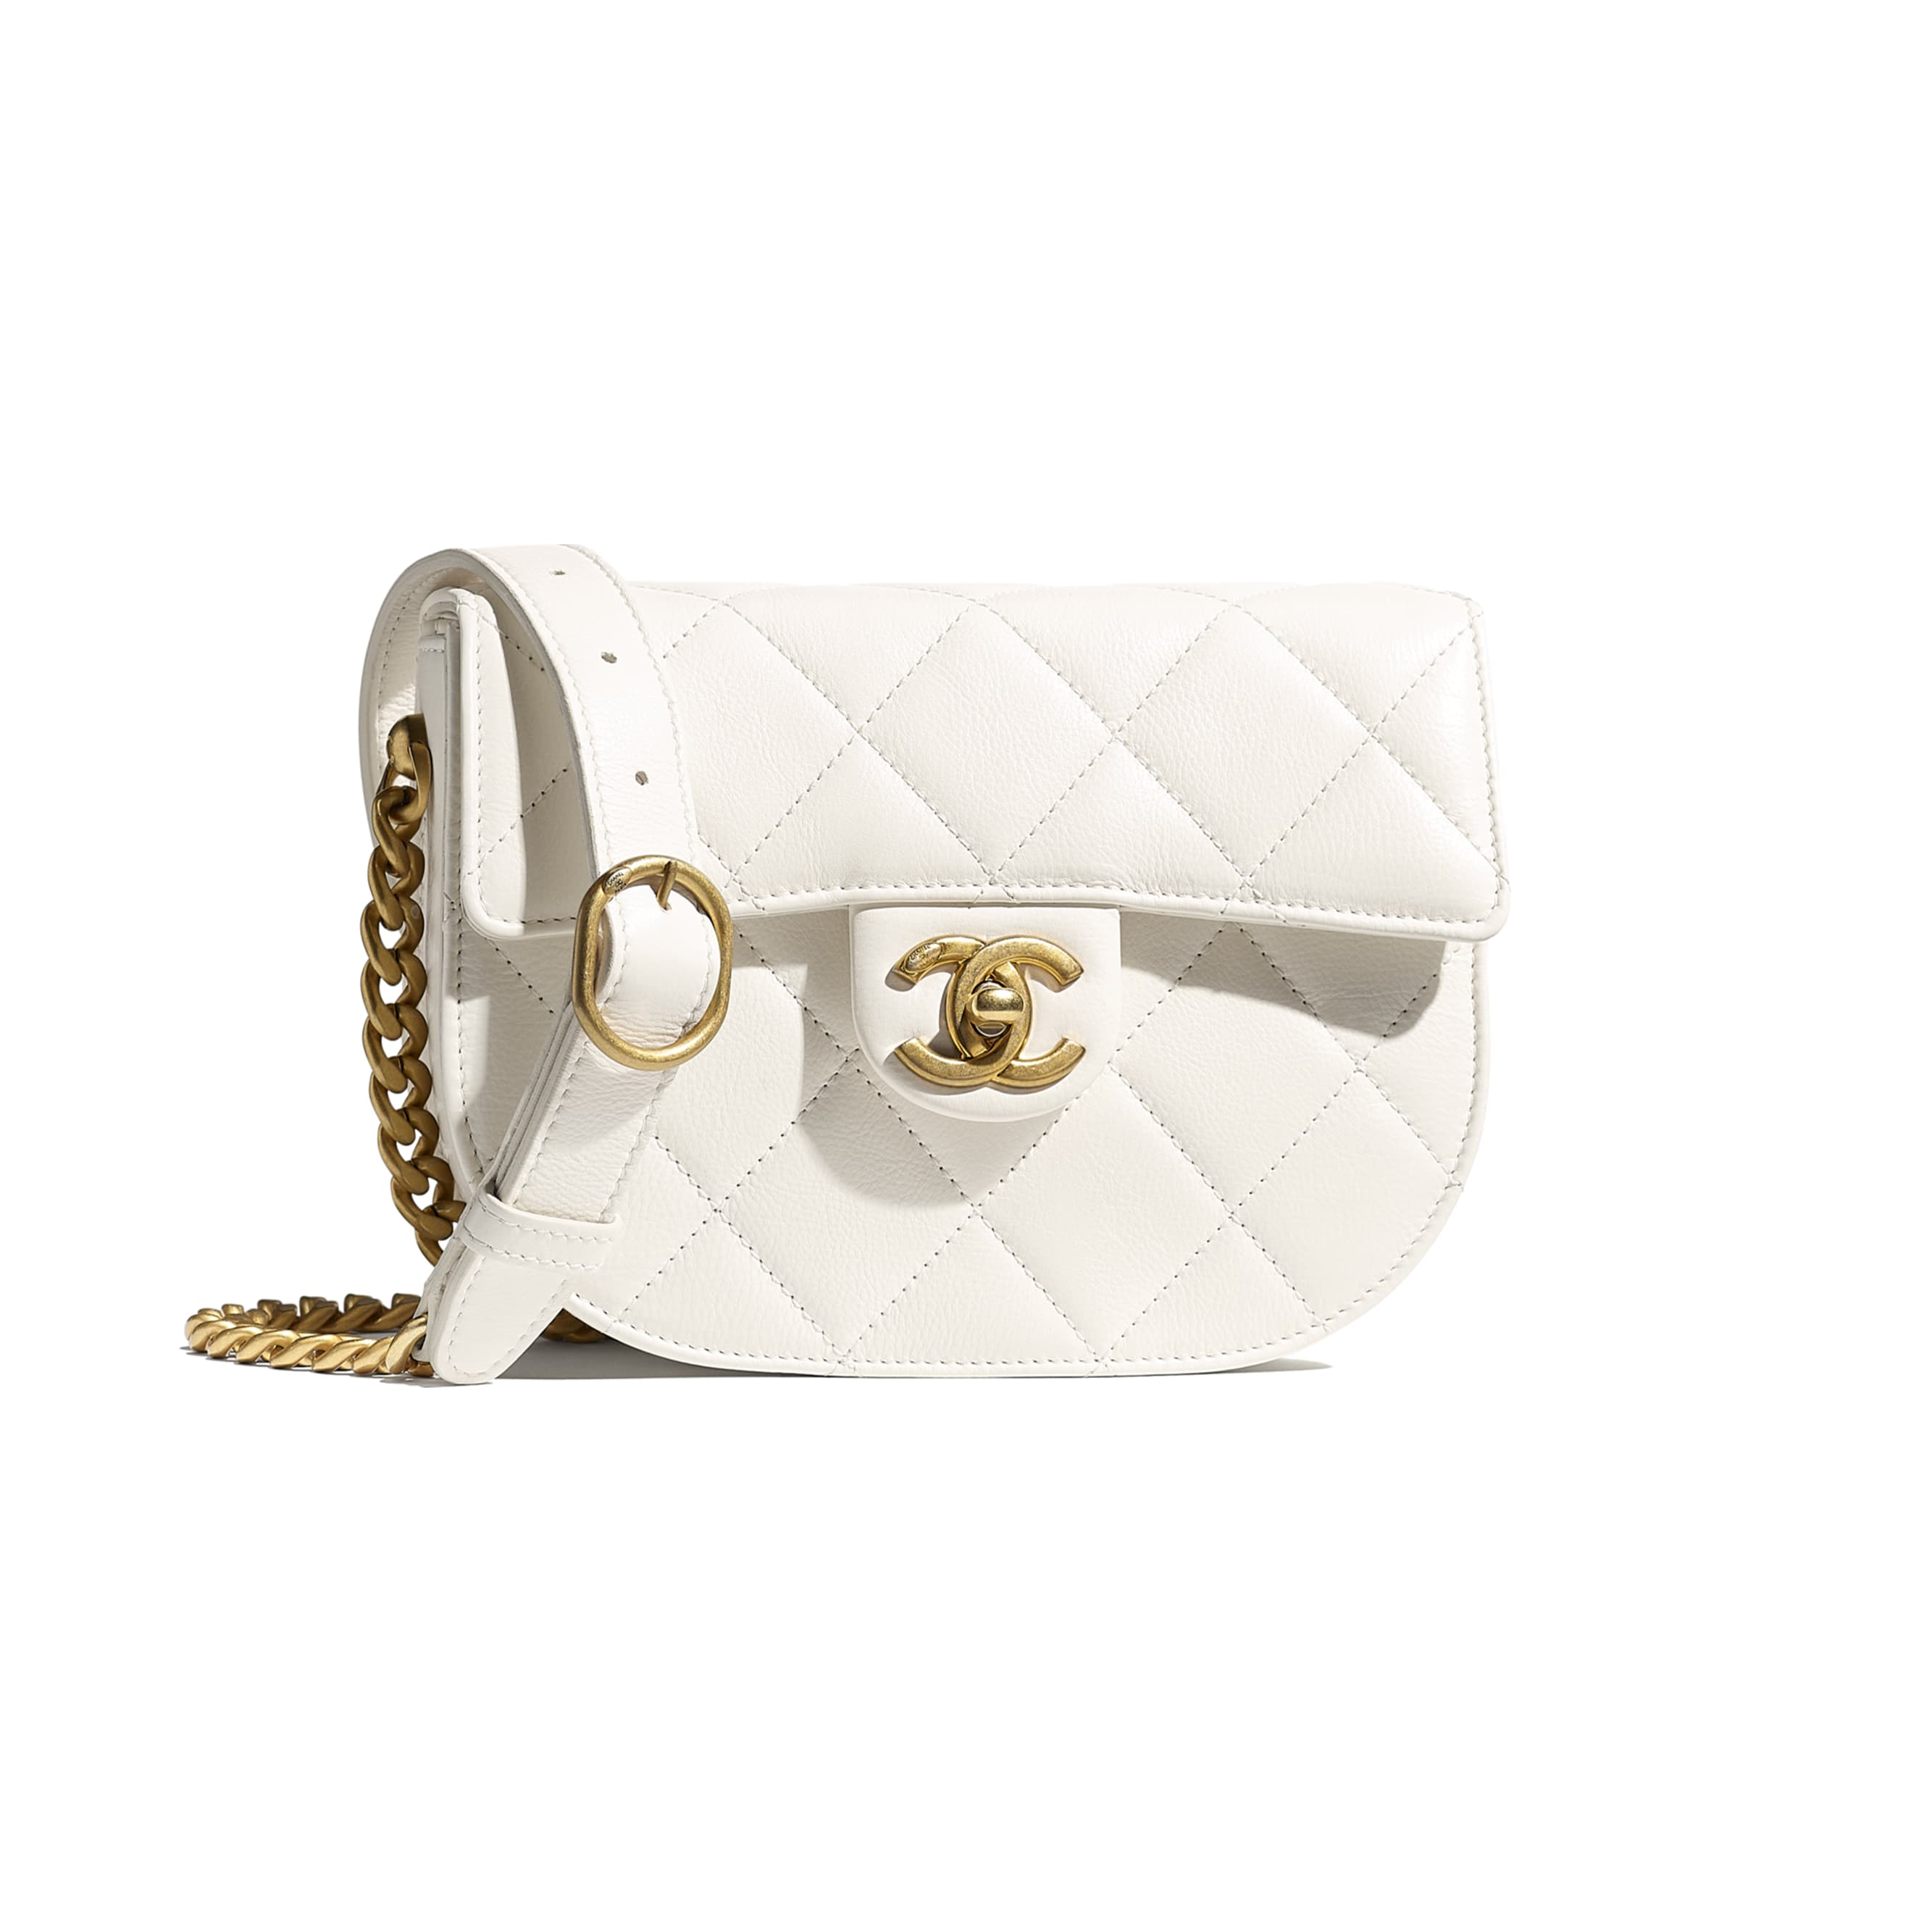 Mini Messenger Bag - White - Calfskin & Gold-Tone Metal - CHANEL - Default view - see standard sized version